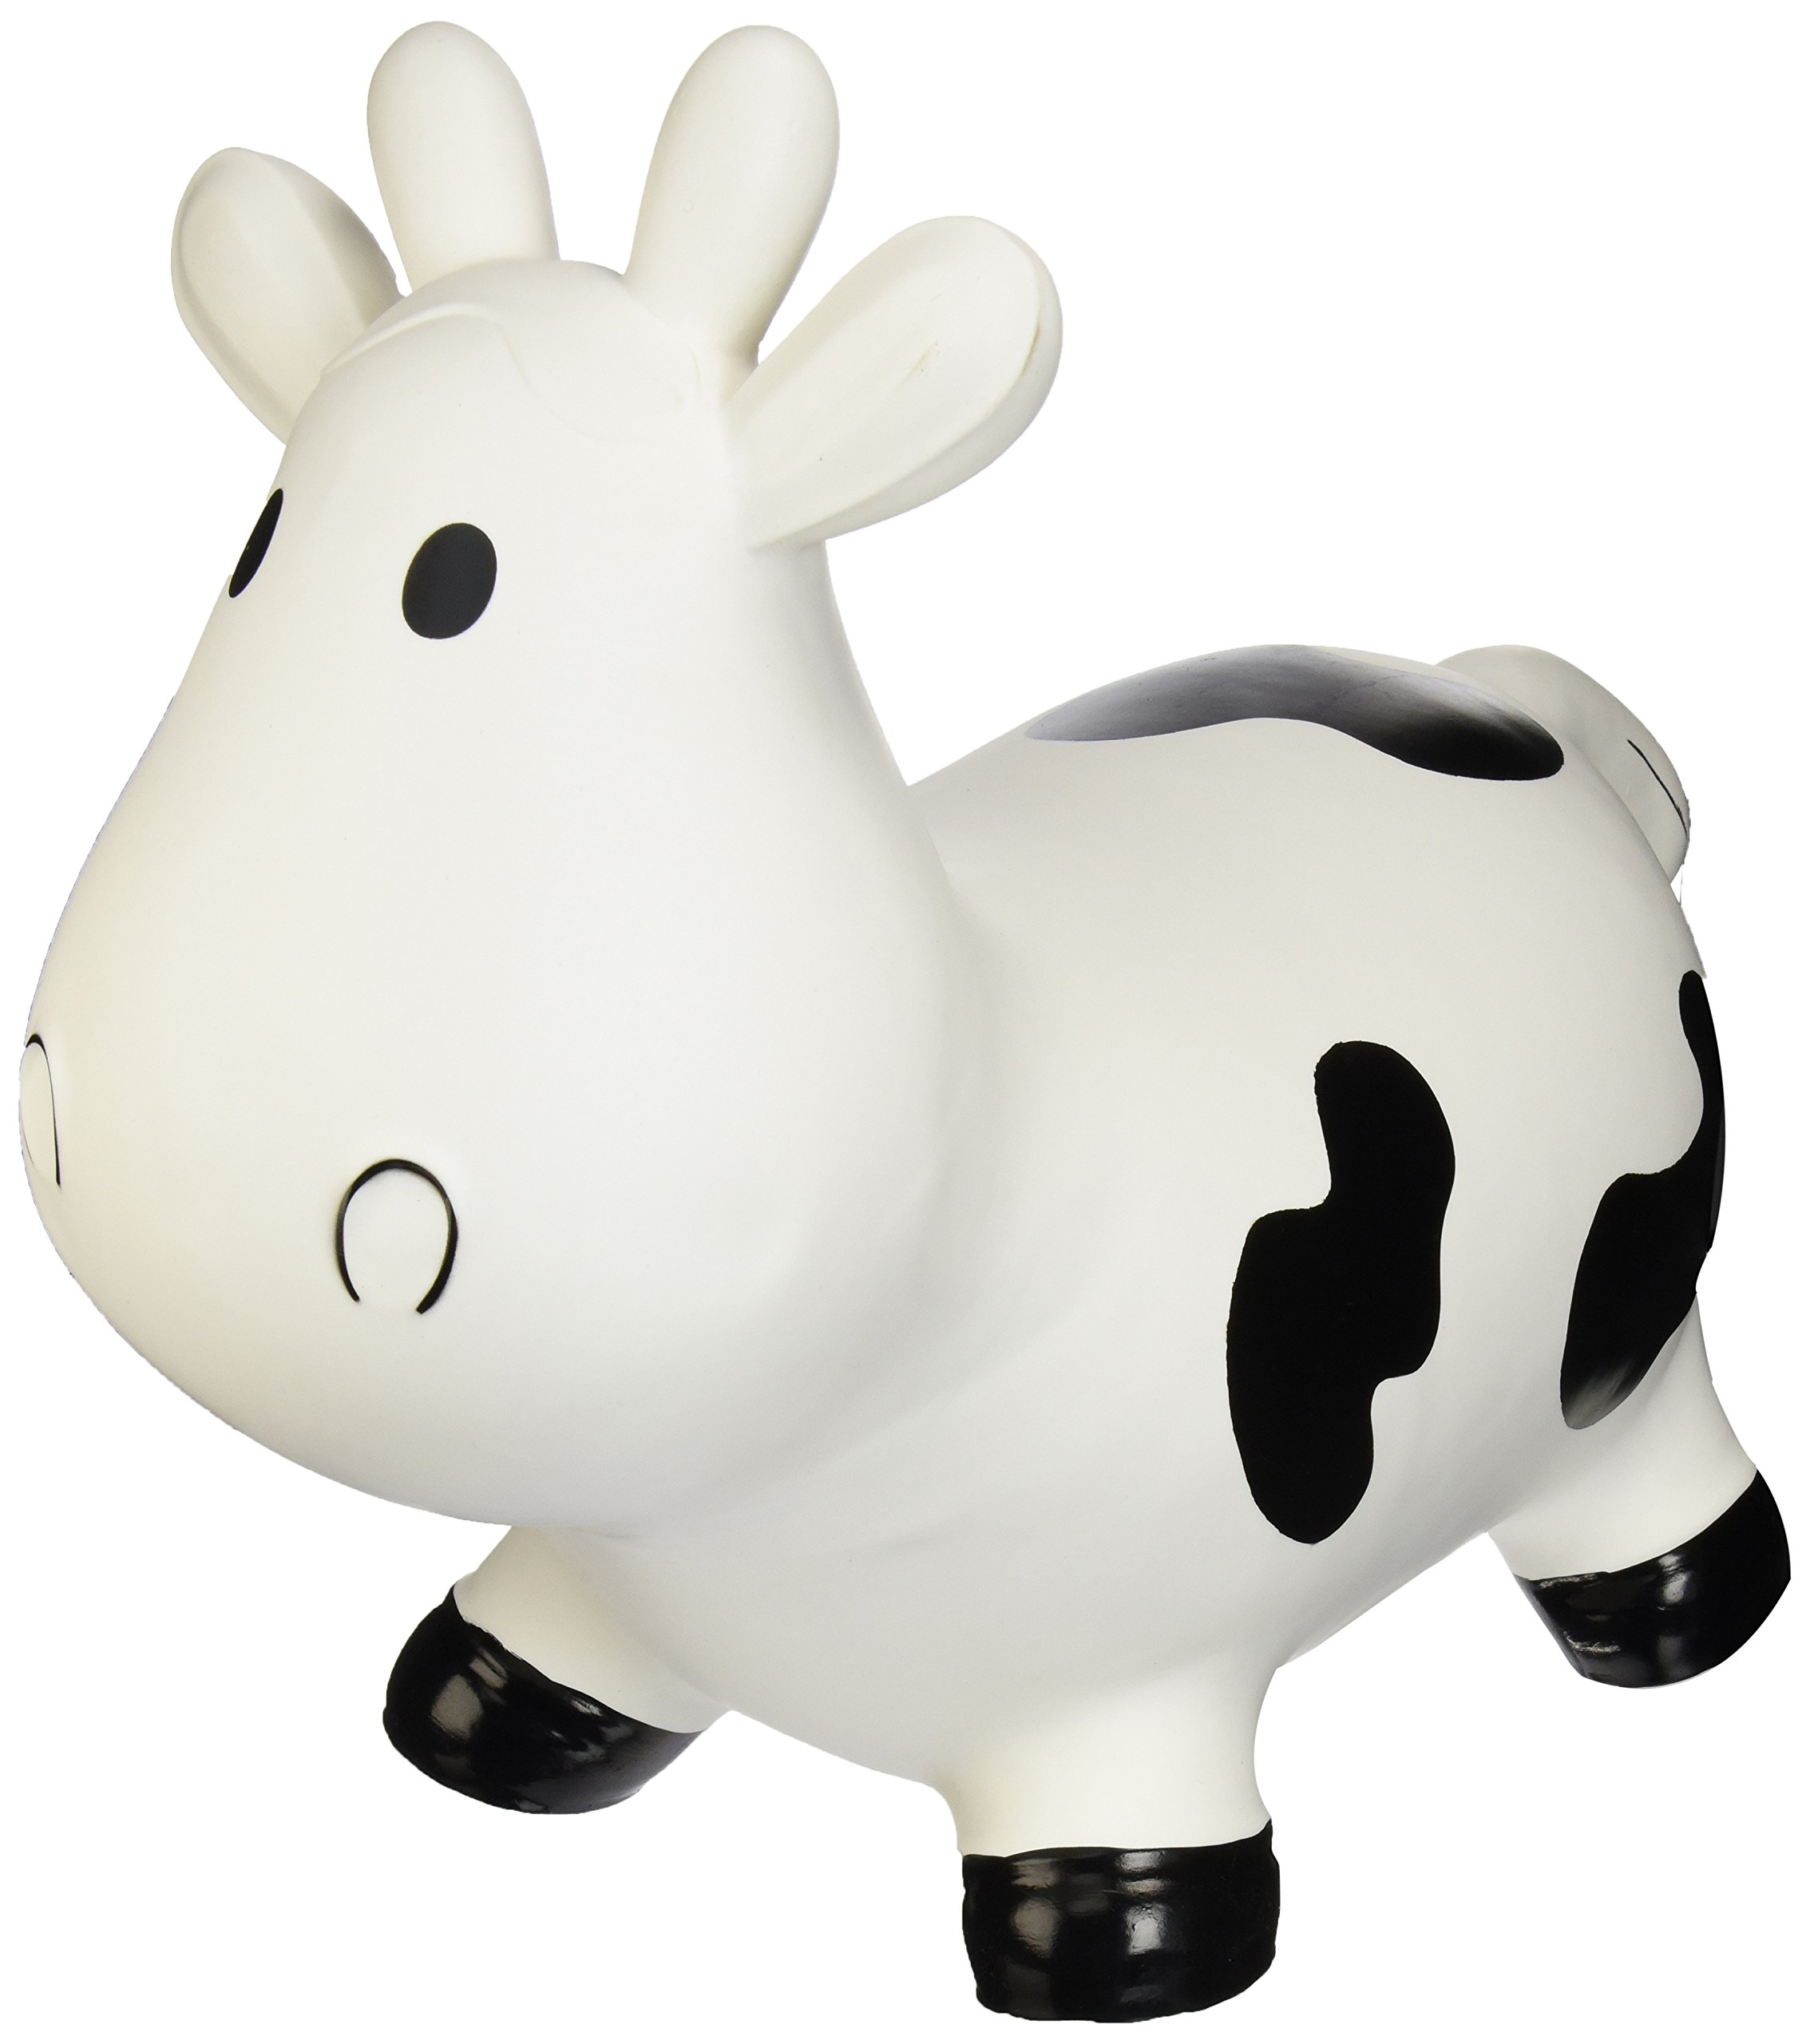 Trumpette Howdy Cow Kids Inflatable Bouncy Rubber Hopper Ride-On Toy White by Trumpette